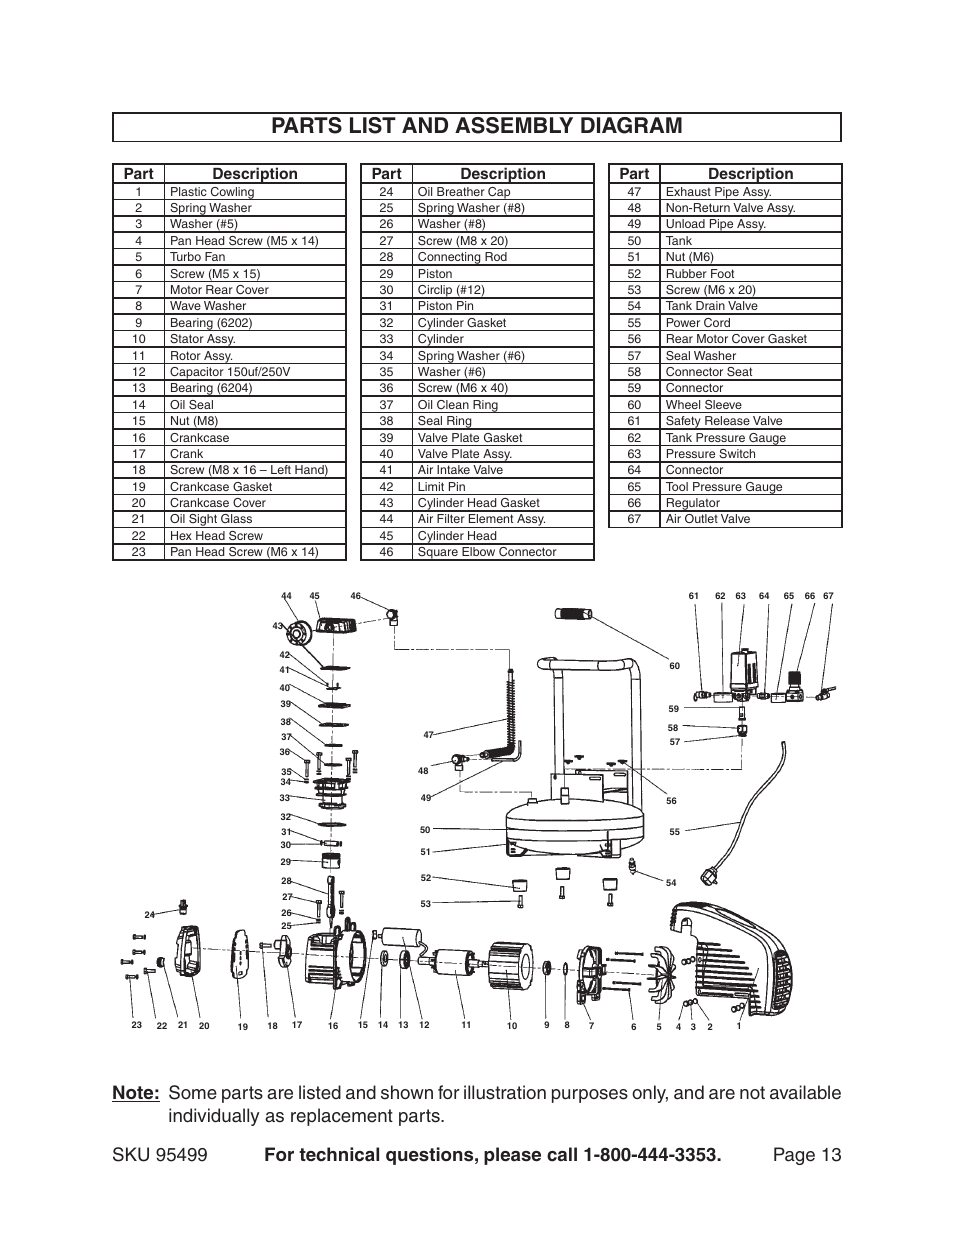 parts list and assembly diagram  part description